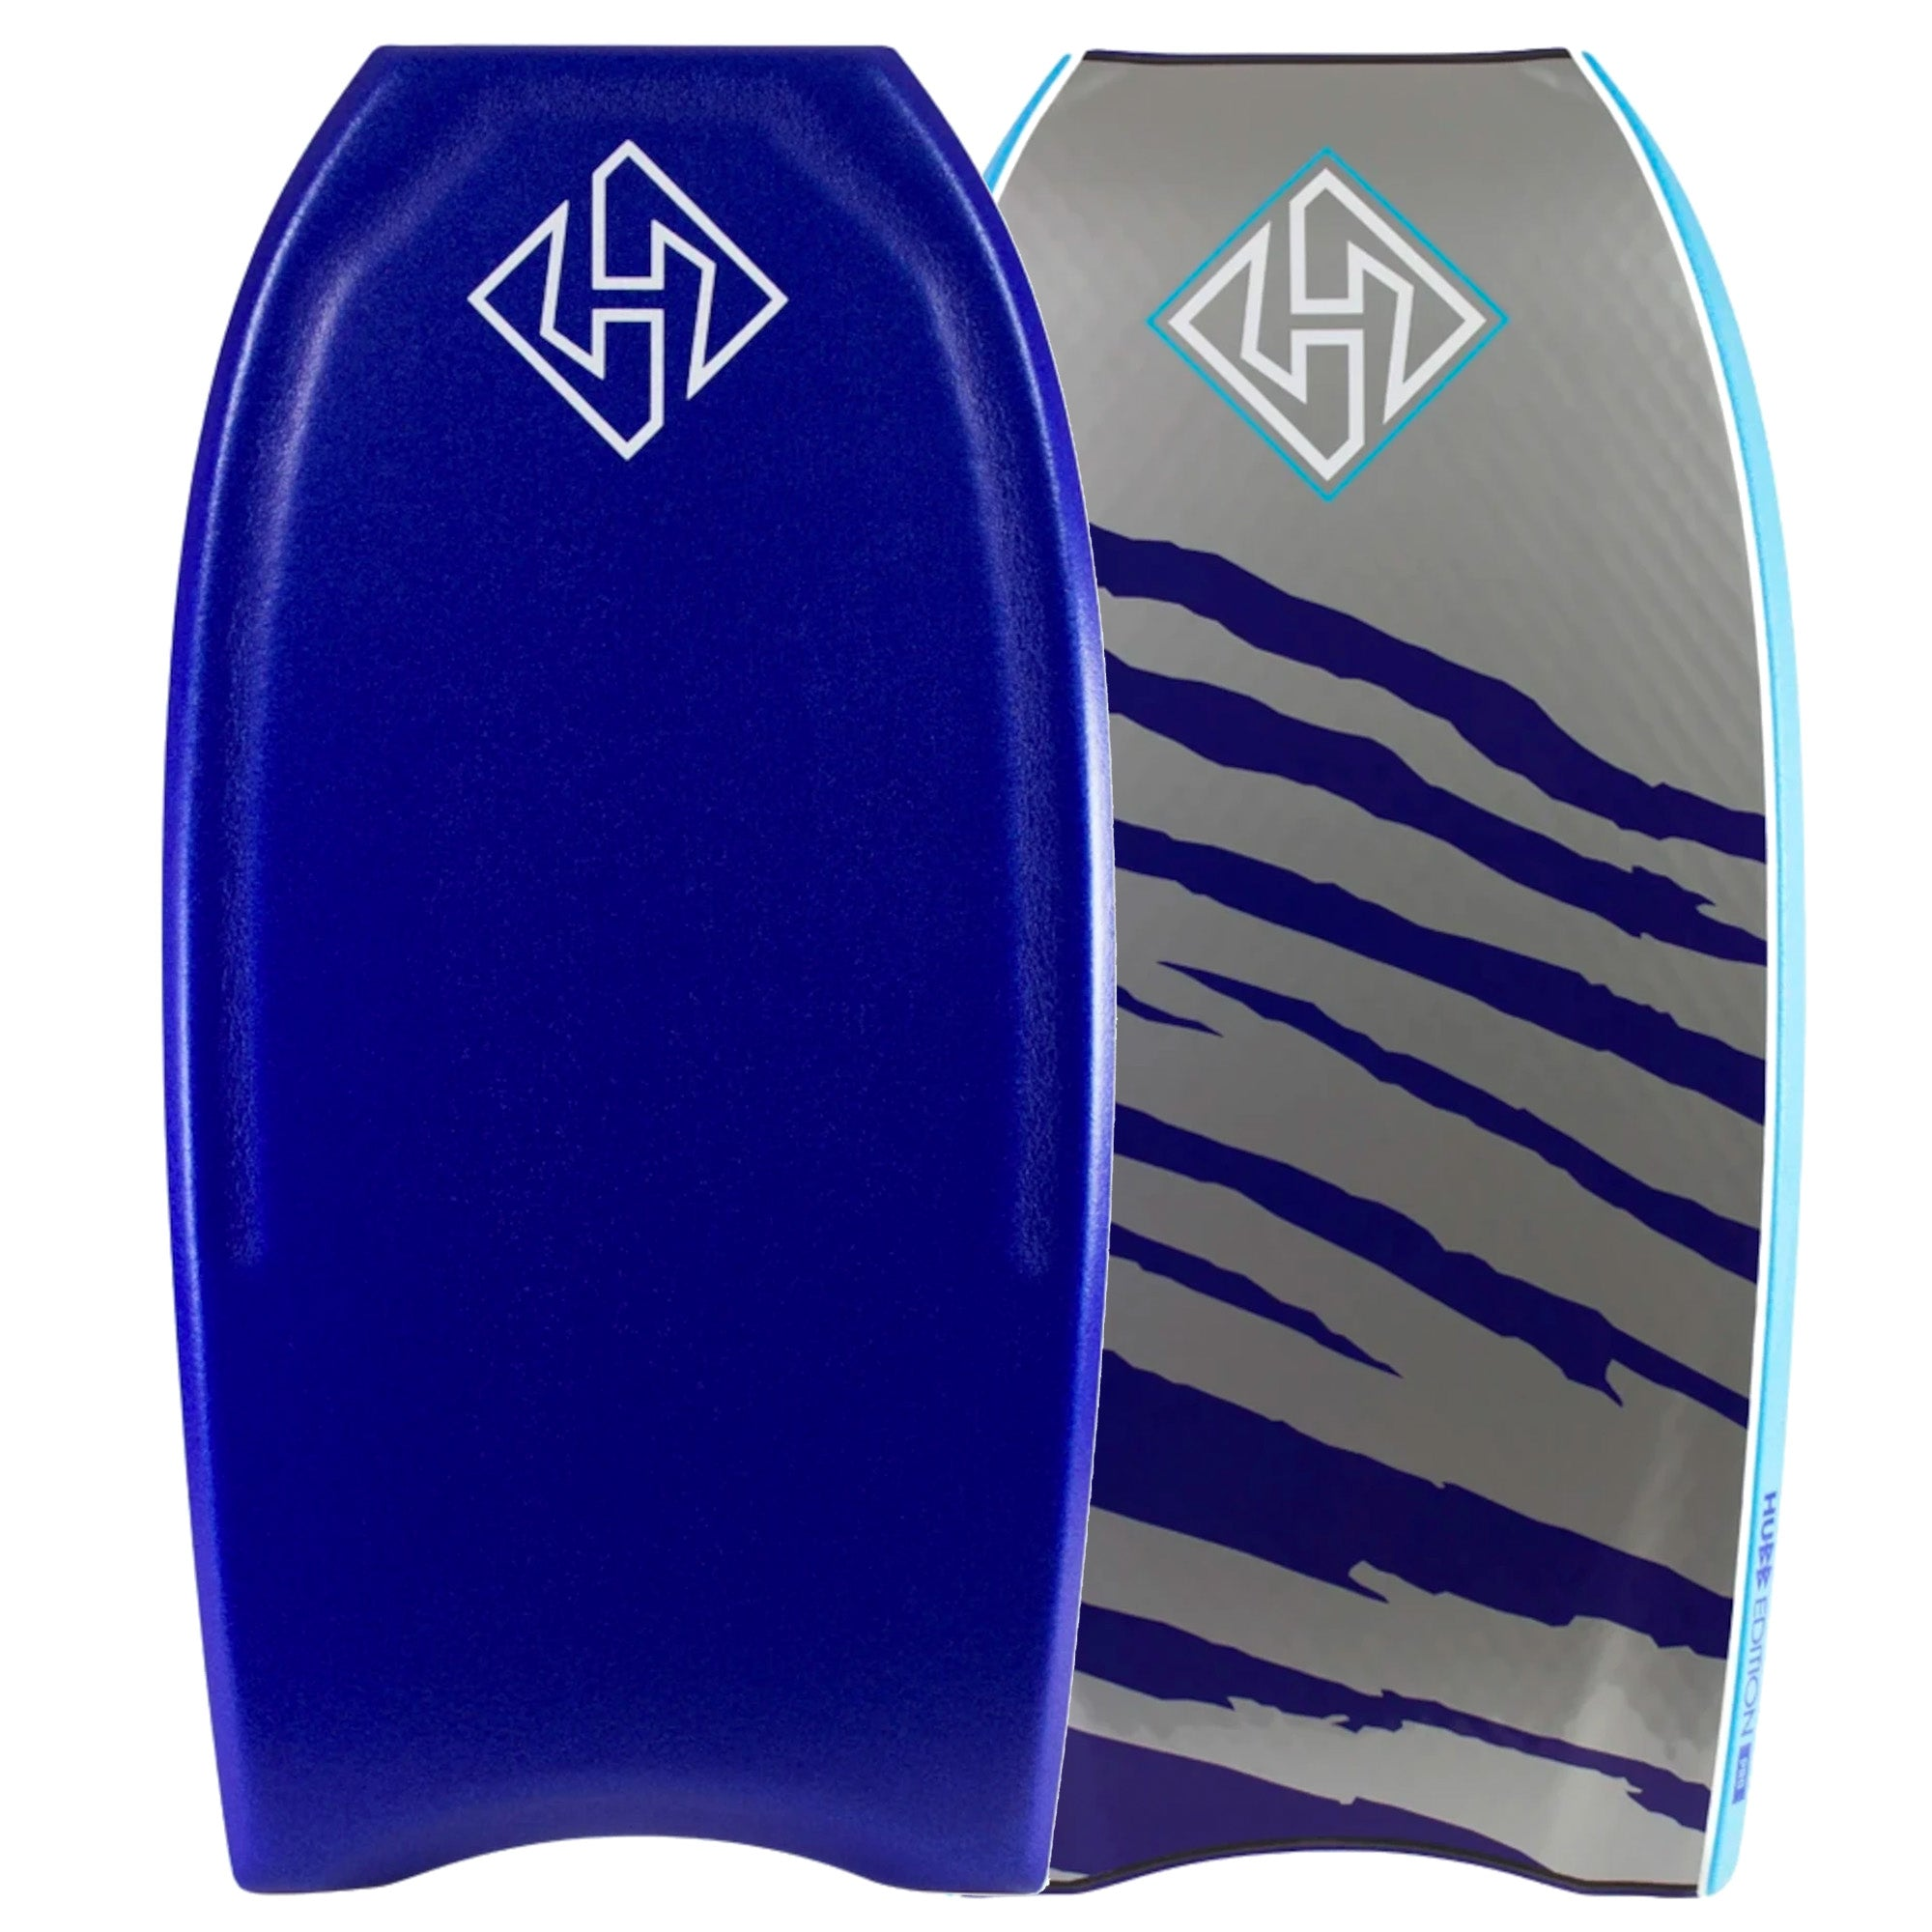 Hubboards Hubb PP PRO Crescent Tail 42'' Bodyboard - Blue/Grey